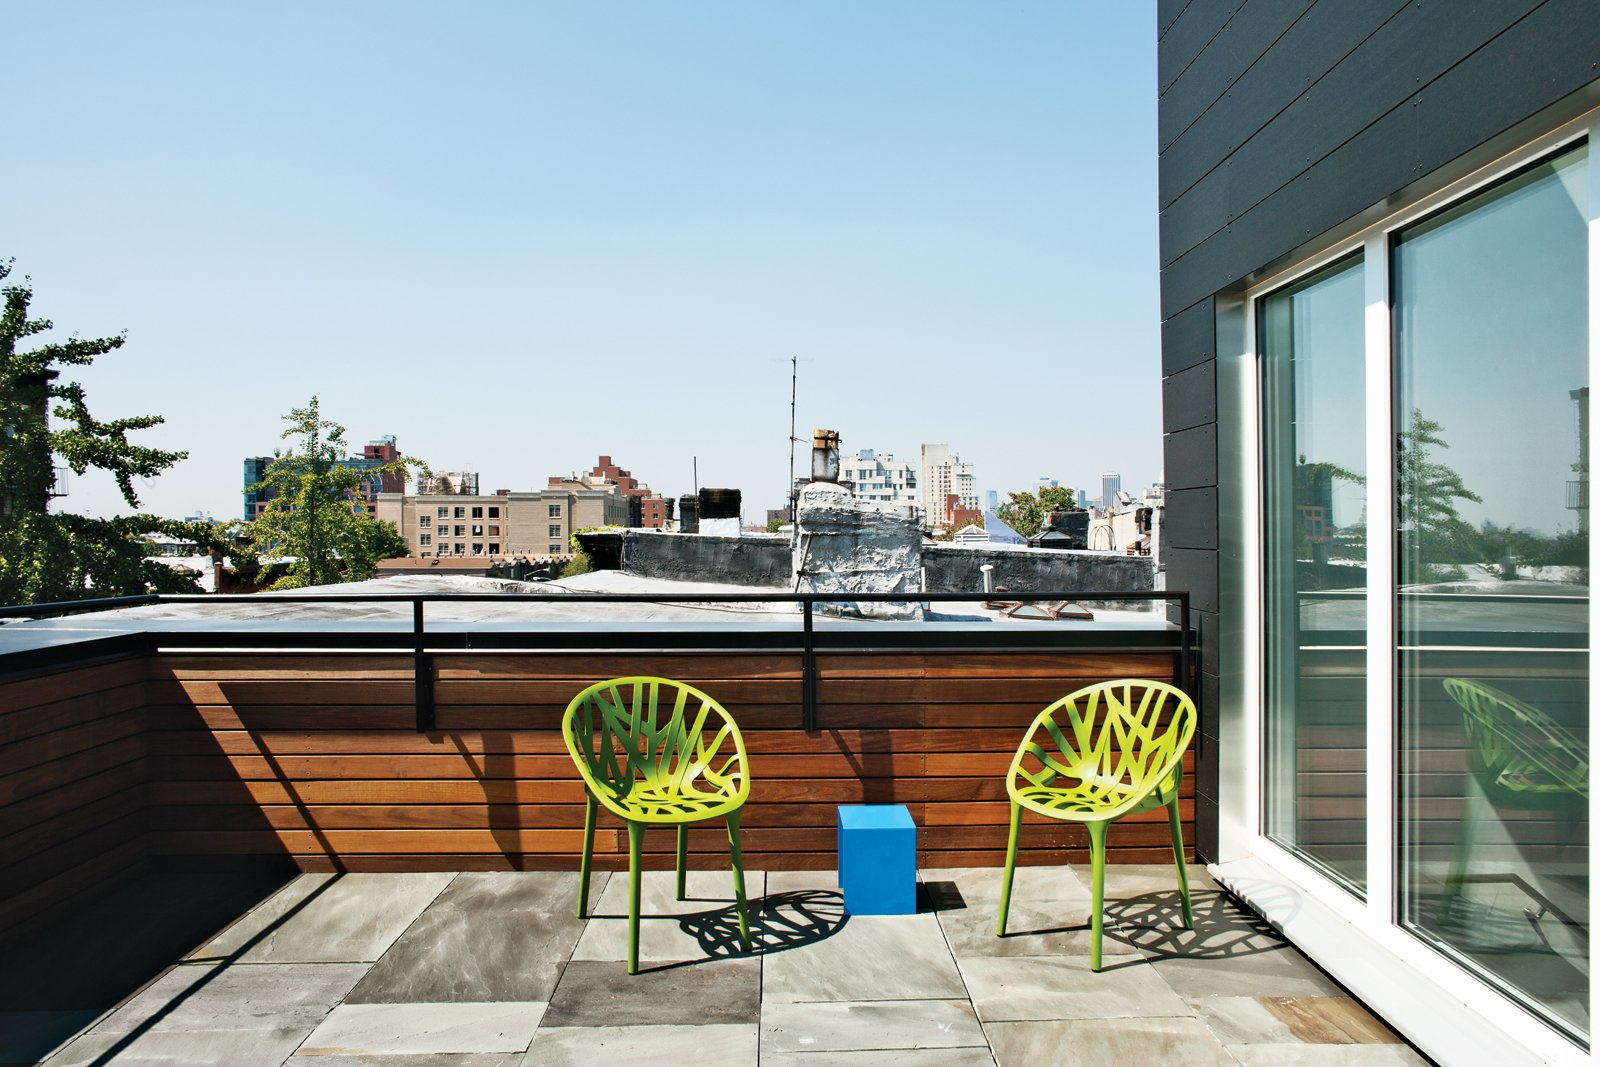 Outdoor and Small Patio, Porch, Deck The designer added a 500-square-foot third floor—hidden from the street—with a small, bluestone roof deck, to create a master suite. The roofline was reoriented due south and covered in a combination of solar thermal panels by Stielbel Eltron (to heat the domestic hot water) and Unirac SolarMount SunFrame with 190w photovoltaic panels (for electricity).  Private Rooftop Sanctuaries  by Zachary Edelson from A Sustainable Brownstone Transformation in Brooklyn